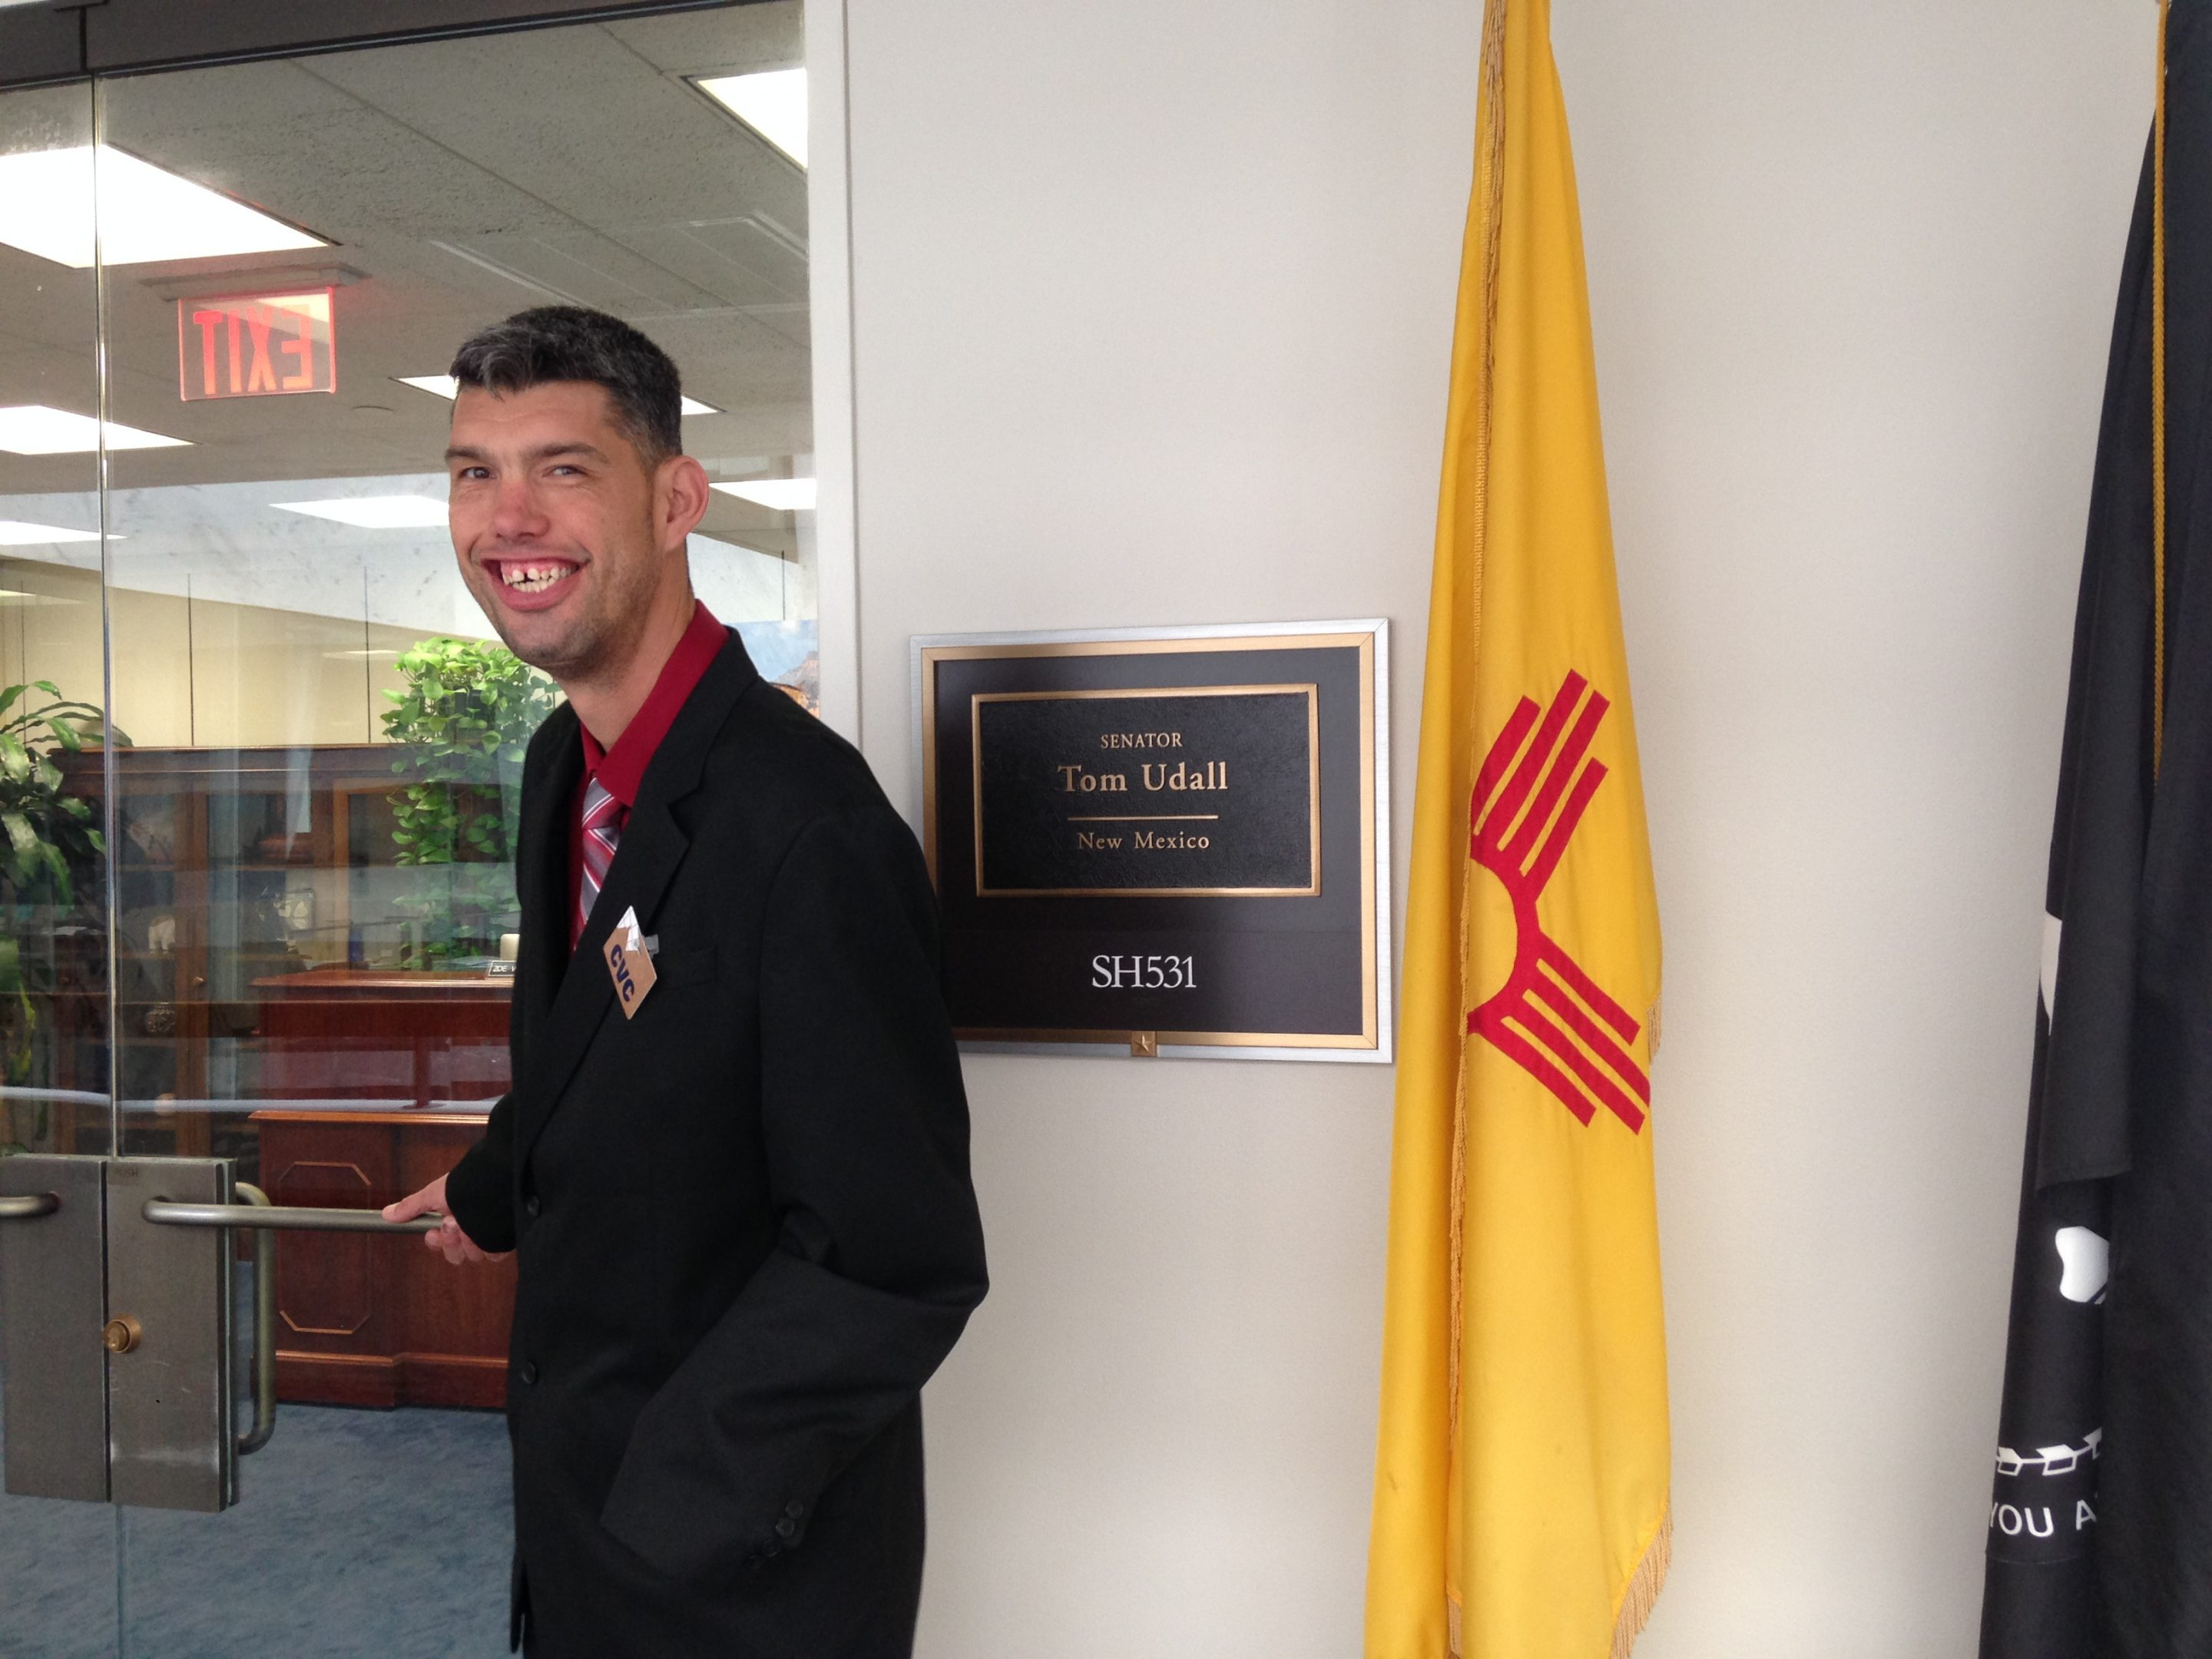 """A man in a dark suit smiles at the camera. He stands to the left of a sign that reads: """"Senator Tom Udall, New Mexico."""" To the left of the sign stand the New Mexico and POW flags."""